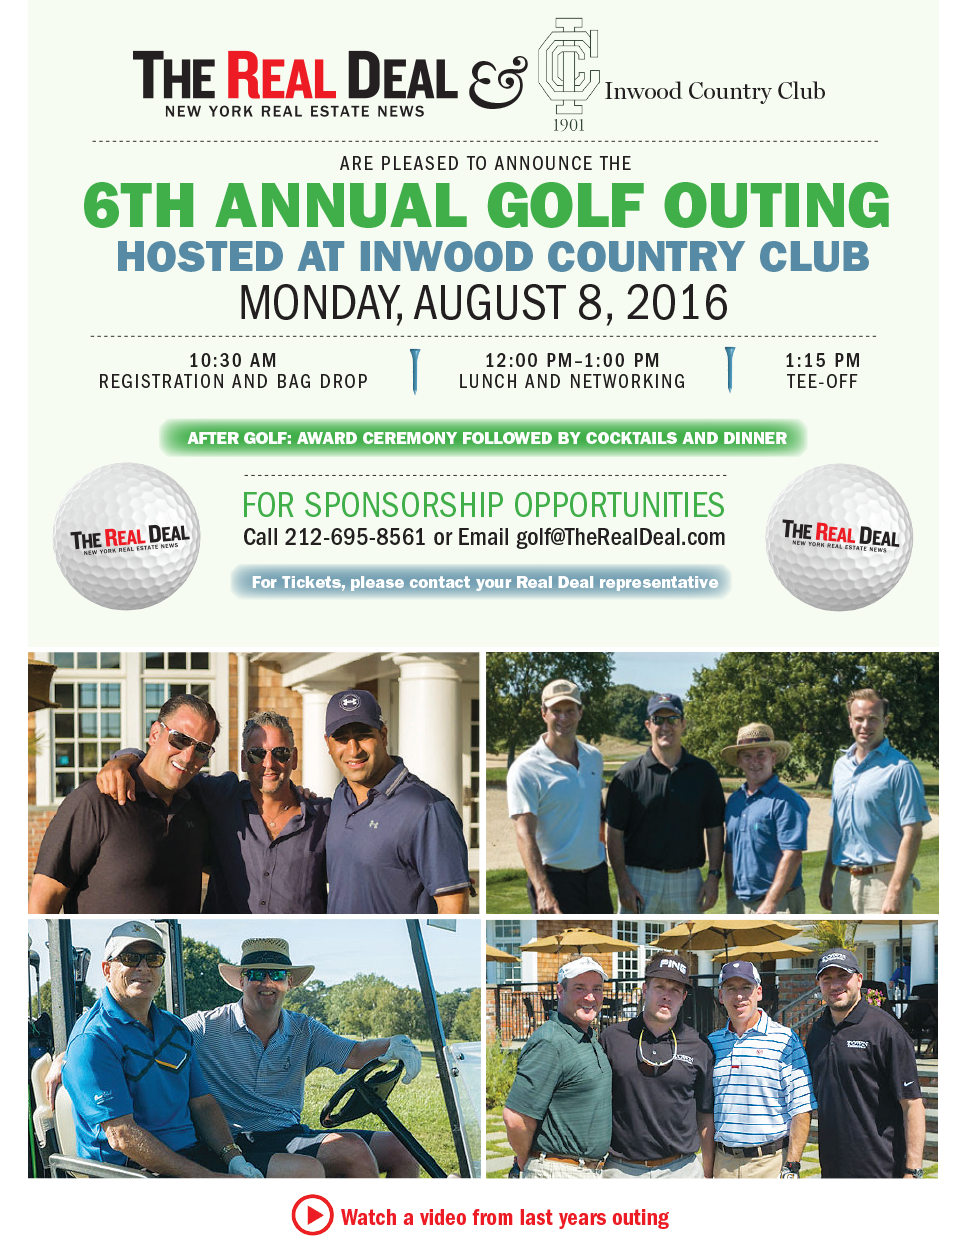 TRD-golf-outing-2016-(2)-(1)-1